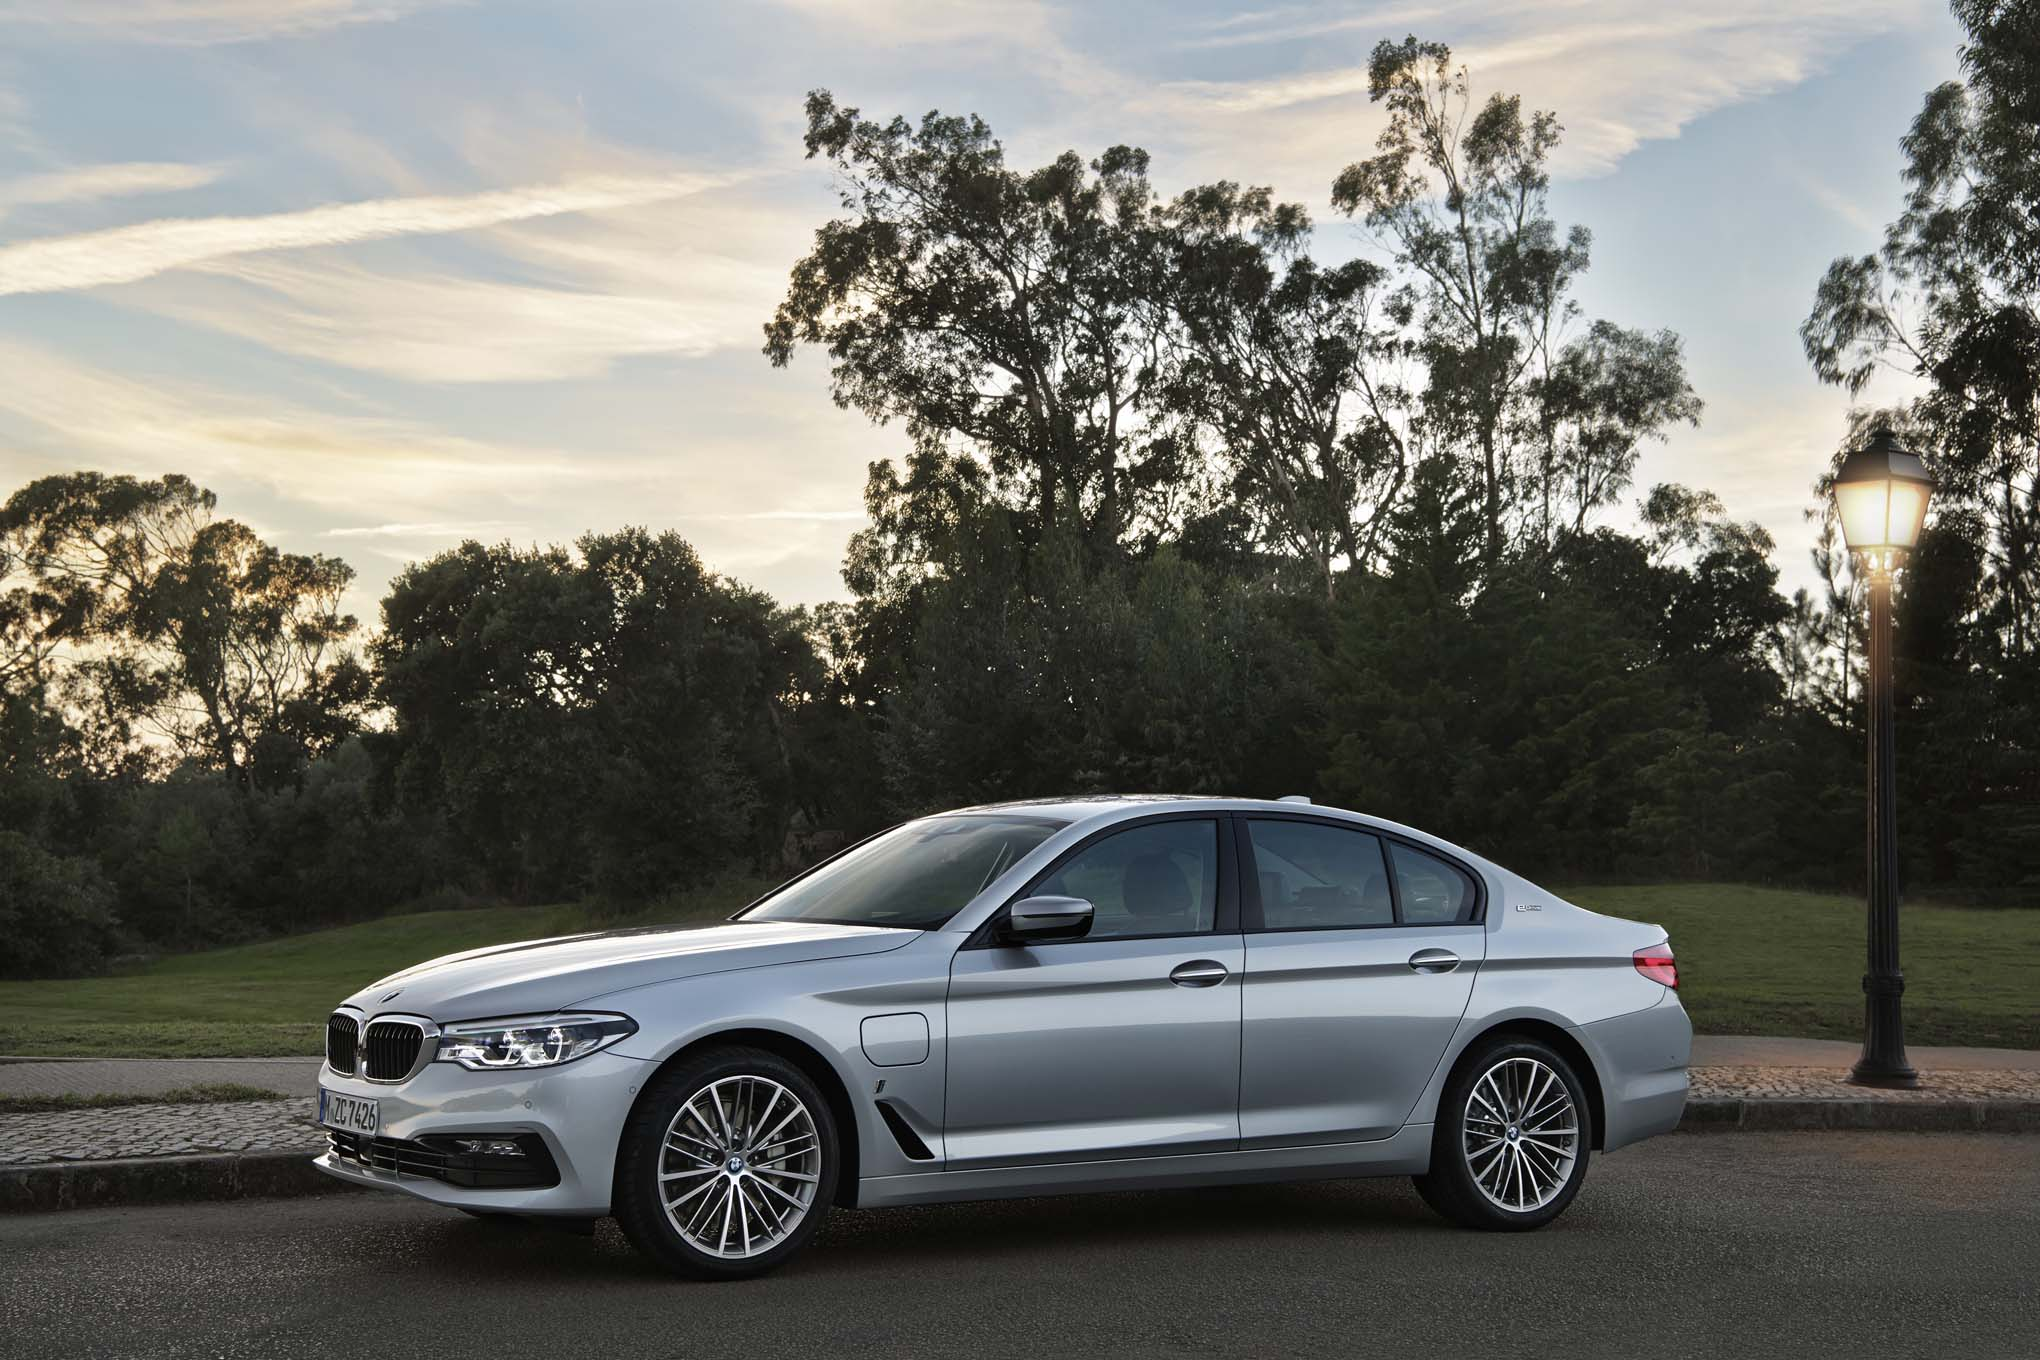 2018-BMW-530e-iPerformance-Euro-Spec-front-side-02